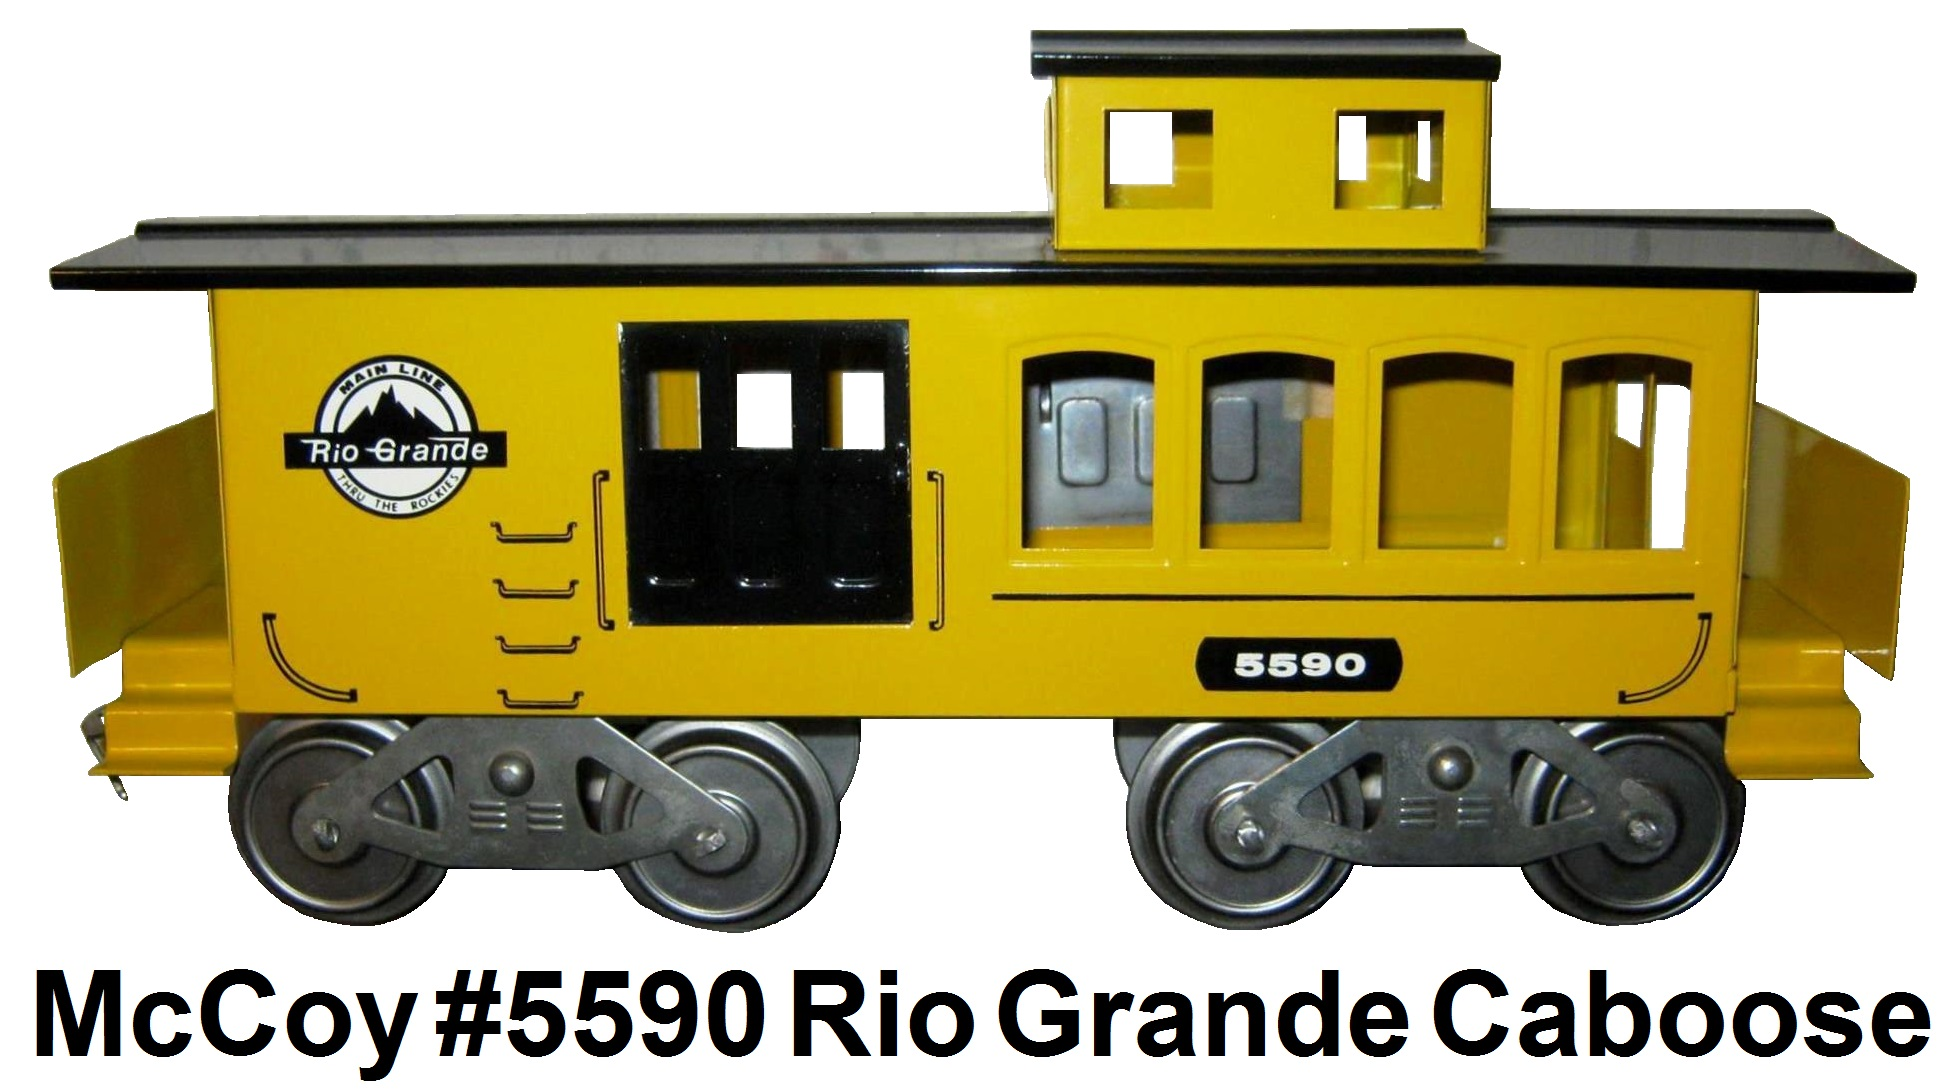 McCoy Standard gauge #5590 Rio Grande Caboose built with 2 right sides